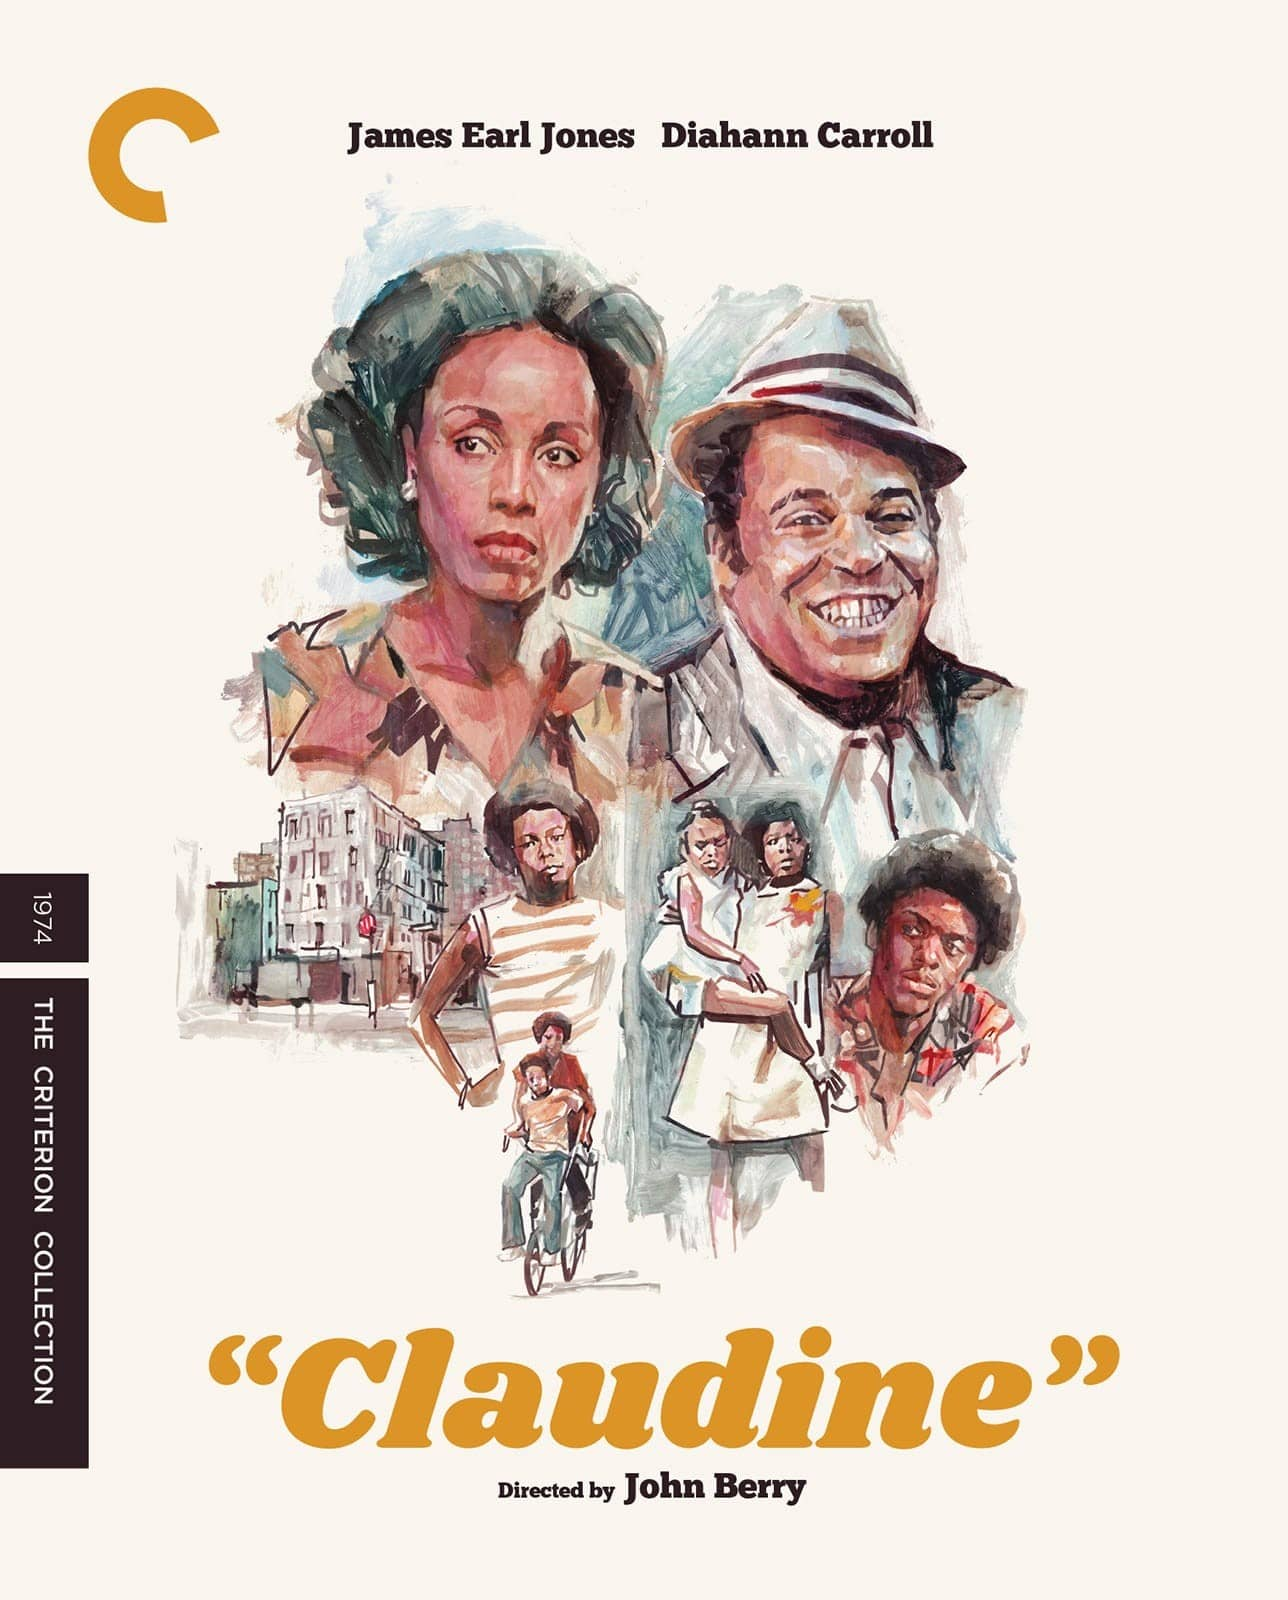 Claudine Criterion Collection Bluray Cover